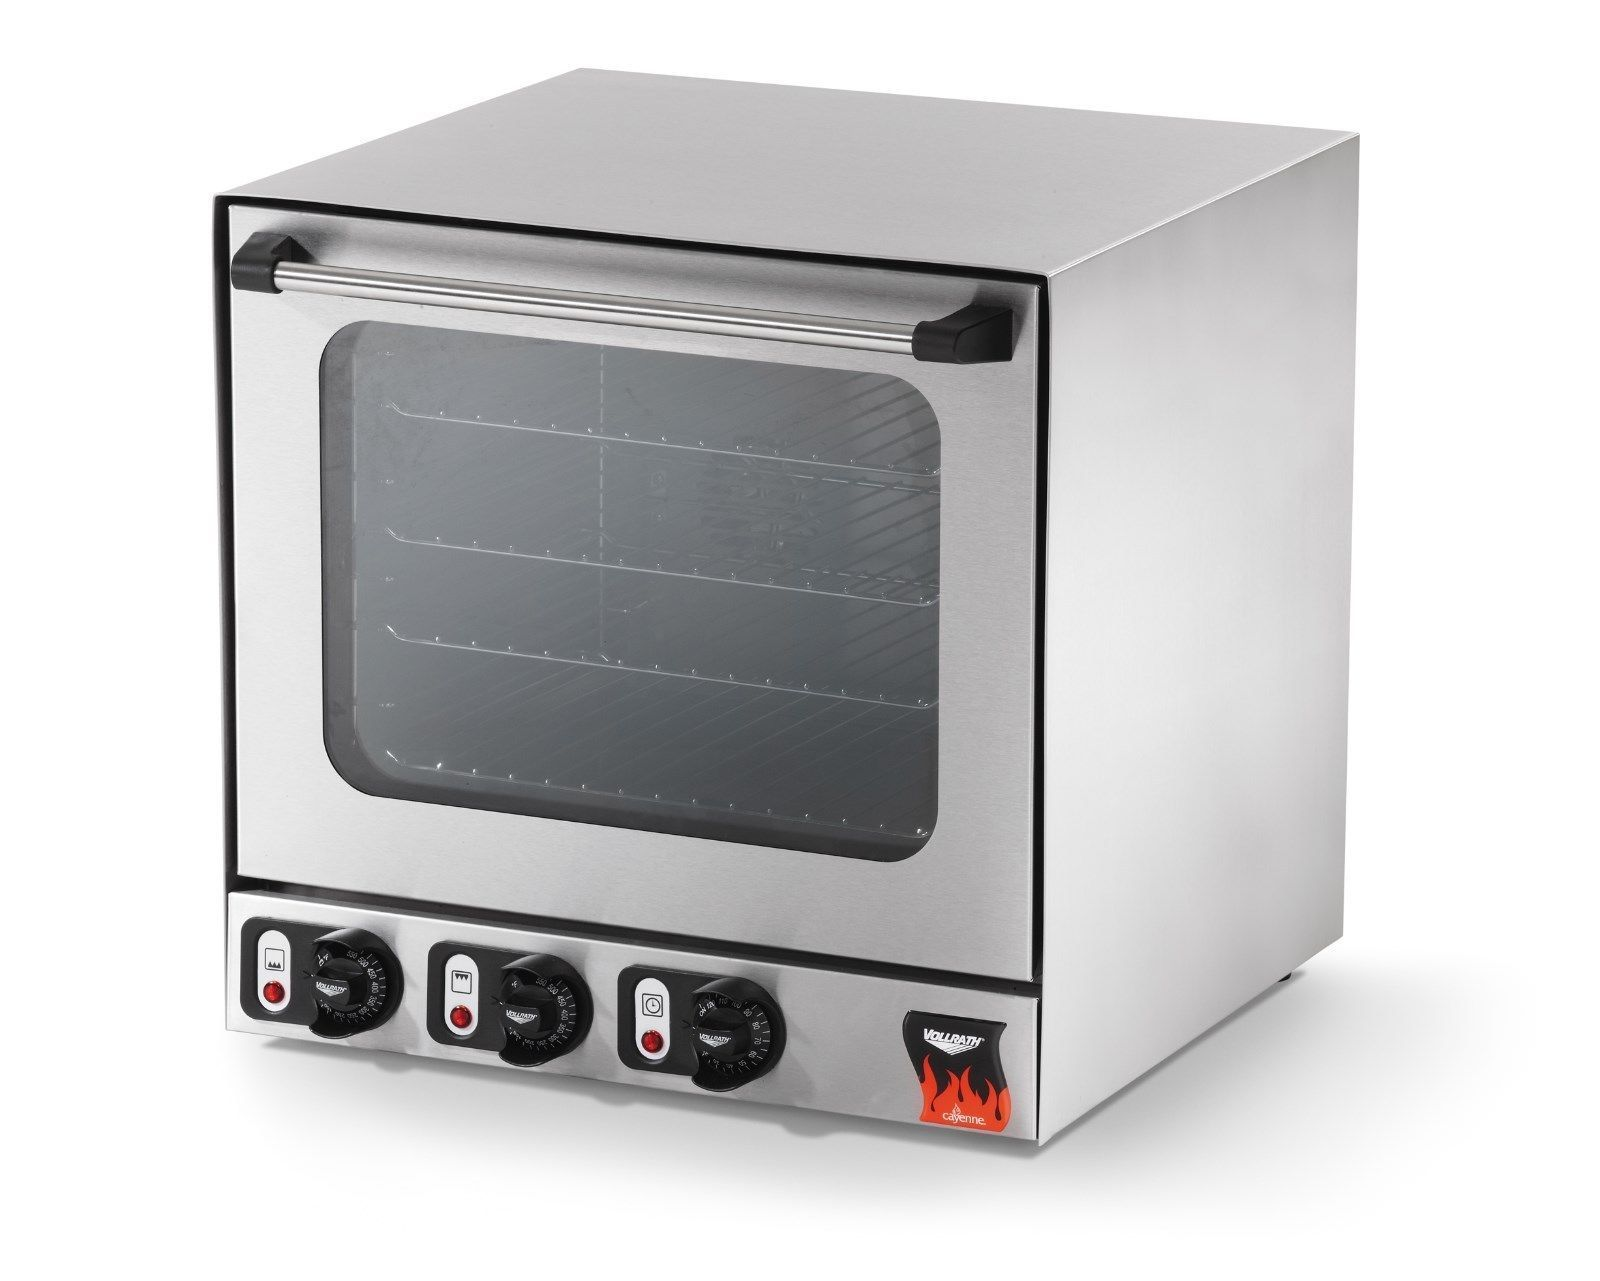 Countertop Convection Oven With Burners On Top : ... Countertop Electric Convection Oven 230V - Deck & Conveyor Ovens